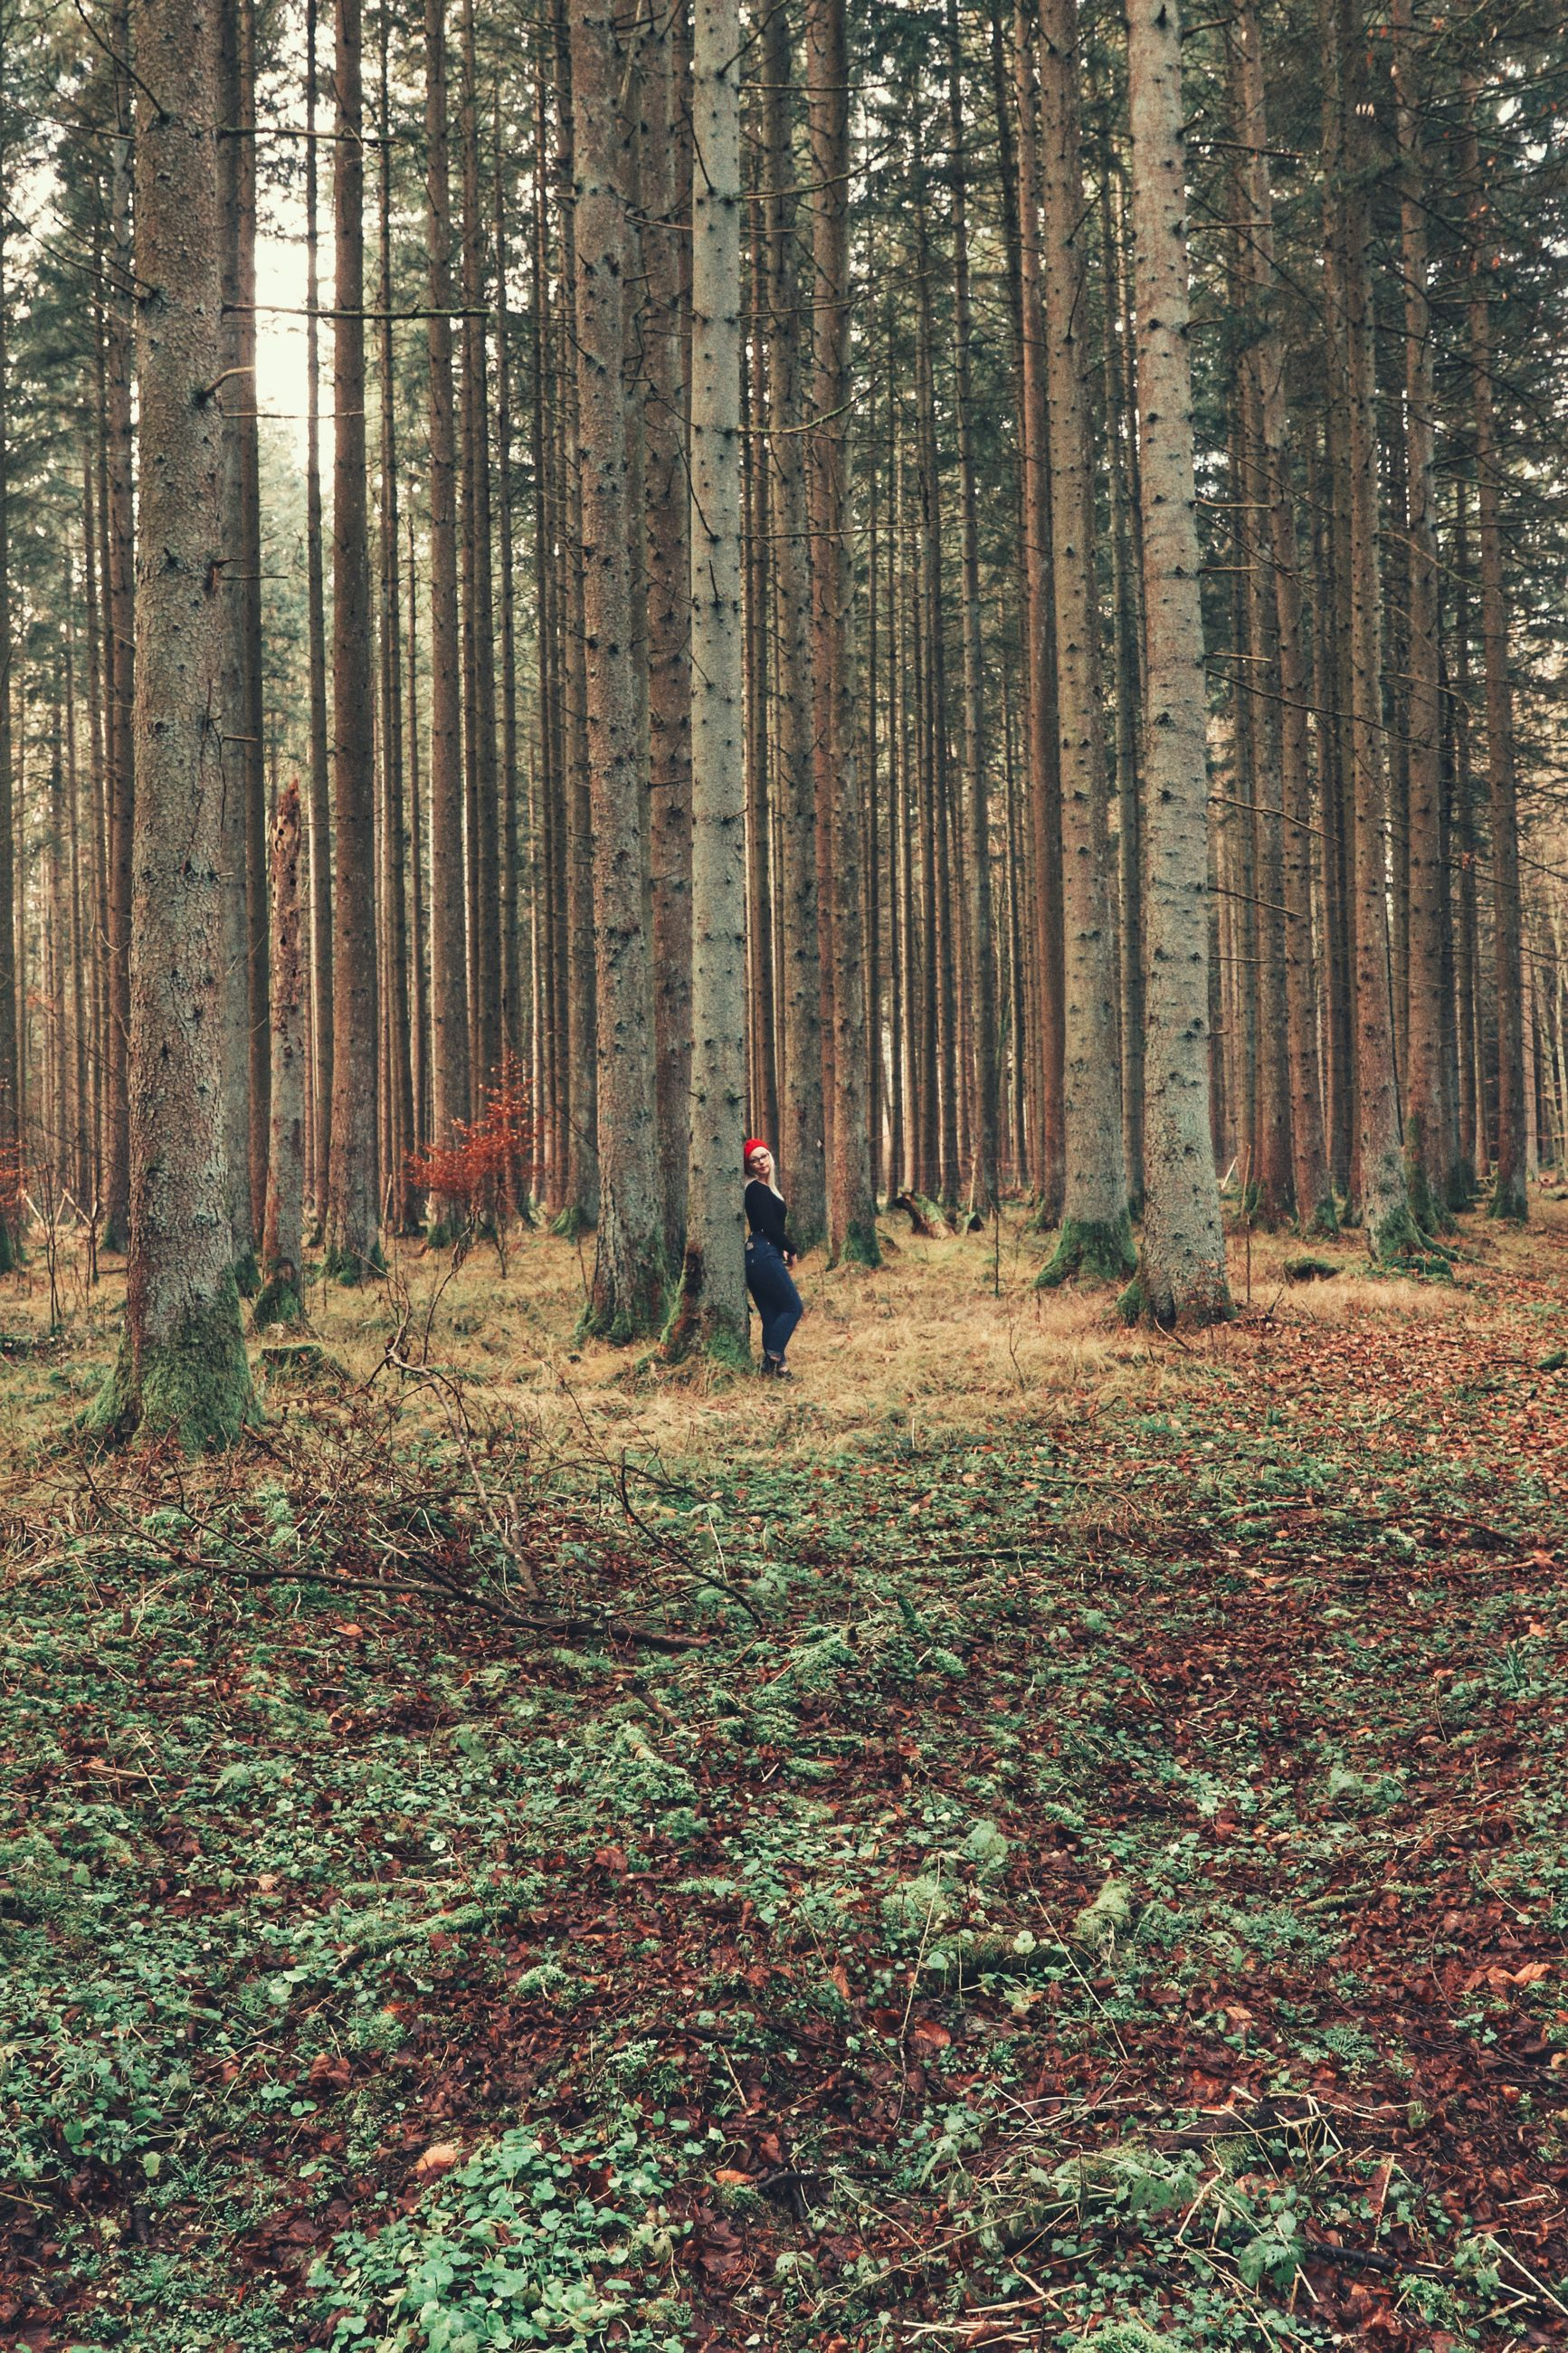 MAN STANDING AMIDST PLANTS IN FOREST